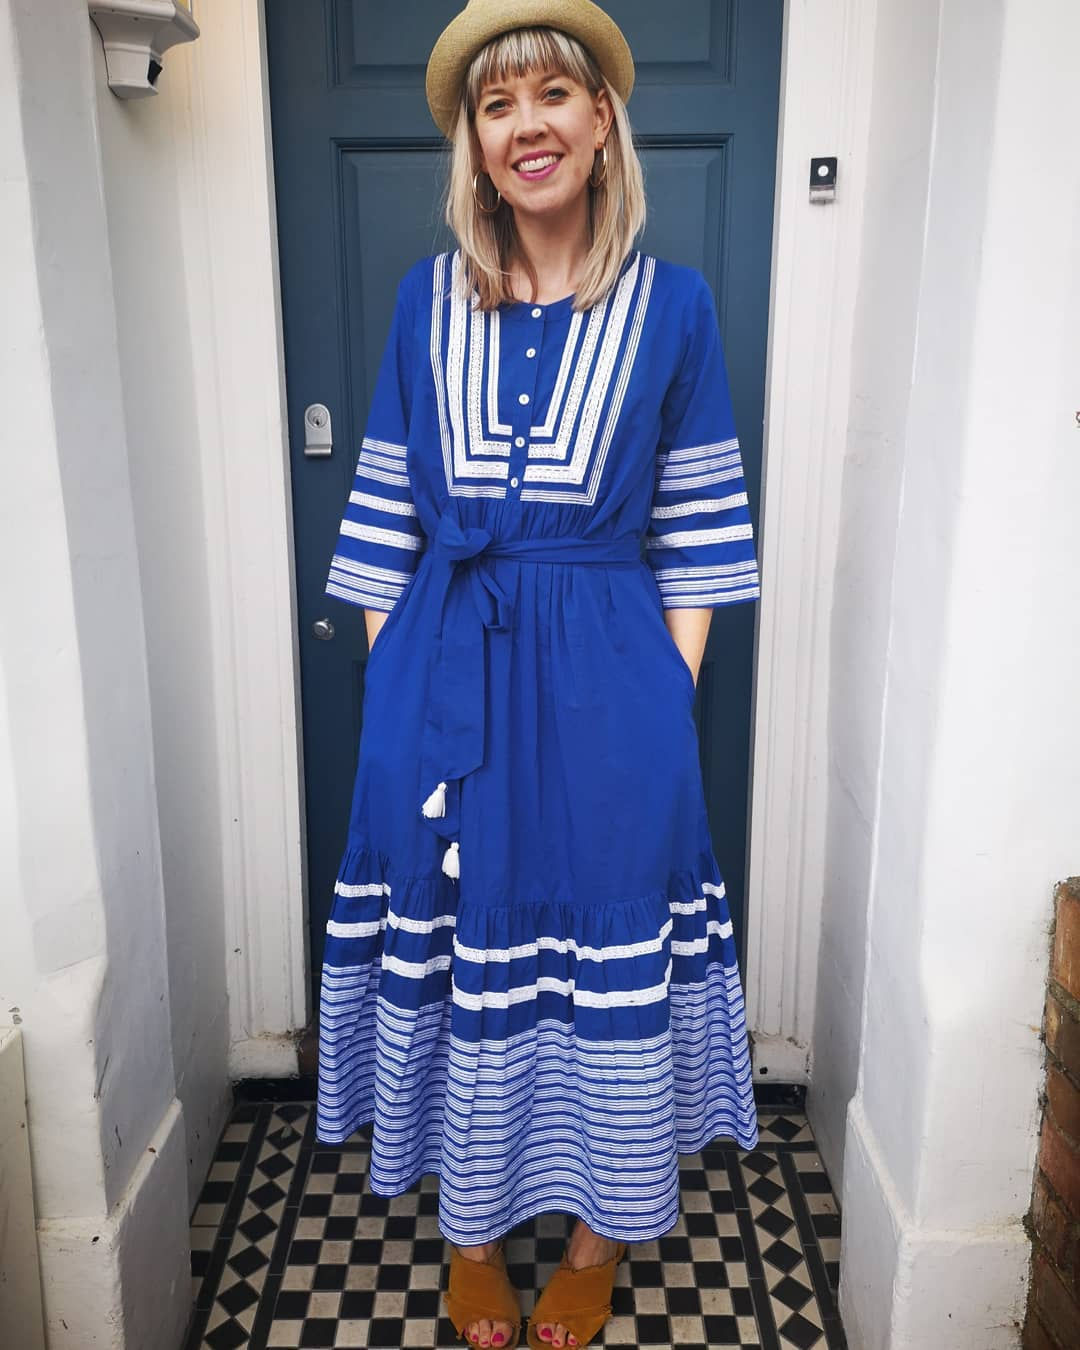 All natural. Indigo-dyed dress from Pink City Prints.